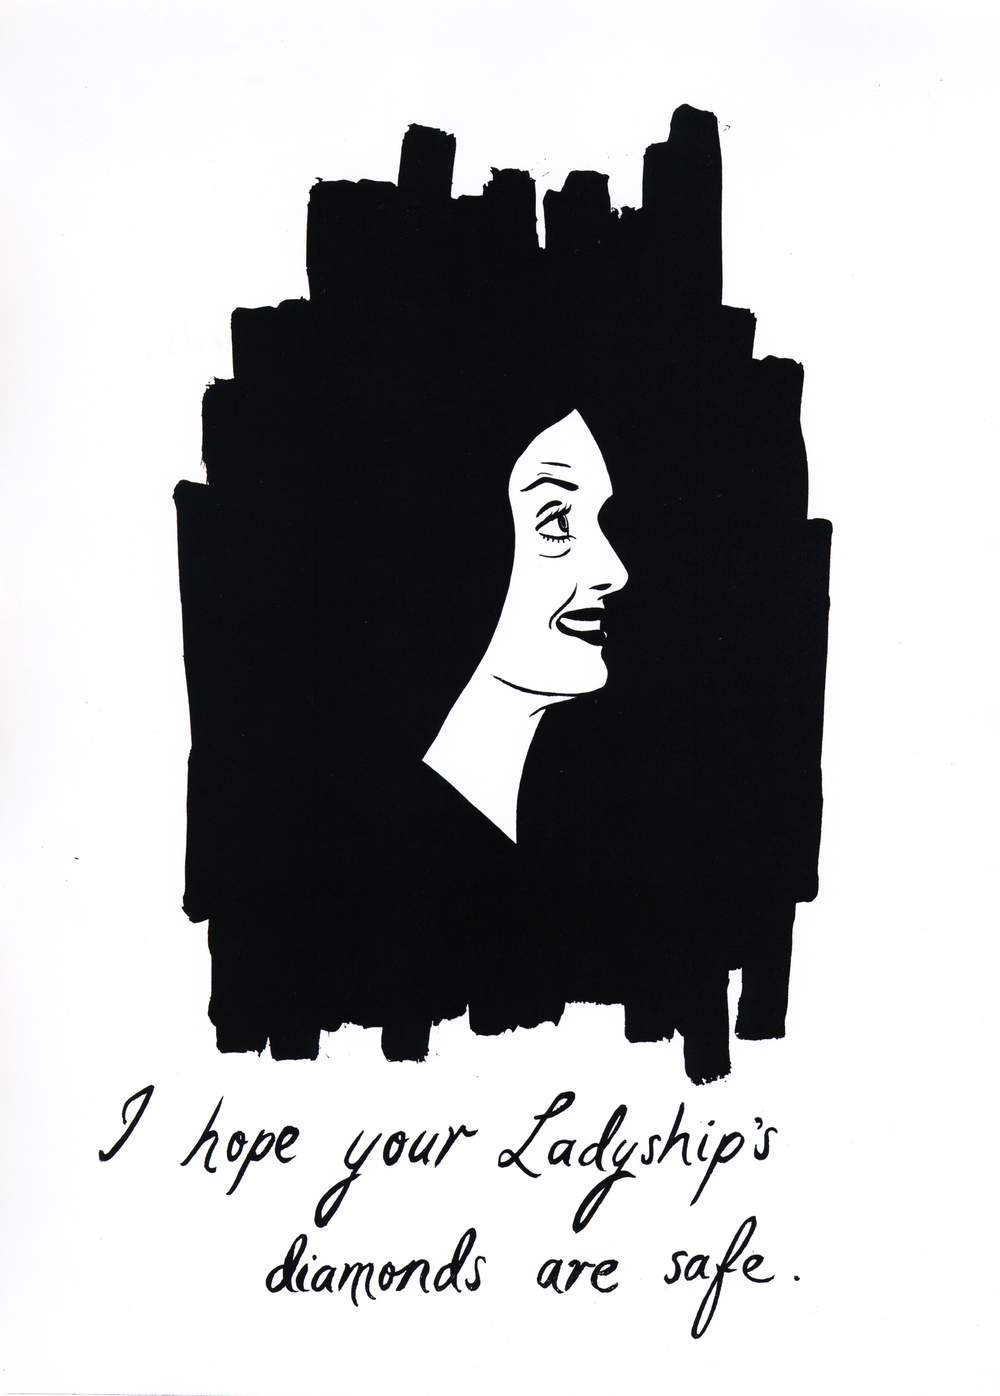 I hope your Ladyship's diamonds   2010   Ink on paper   42 x 29.7 cm / 16.5 x 11.6 in,   47 x 34.5 cm / 18.5 x 13.5 in framed